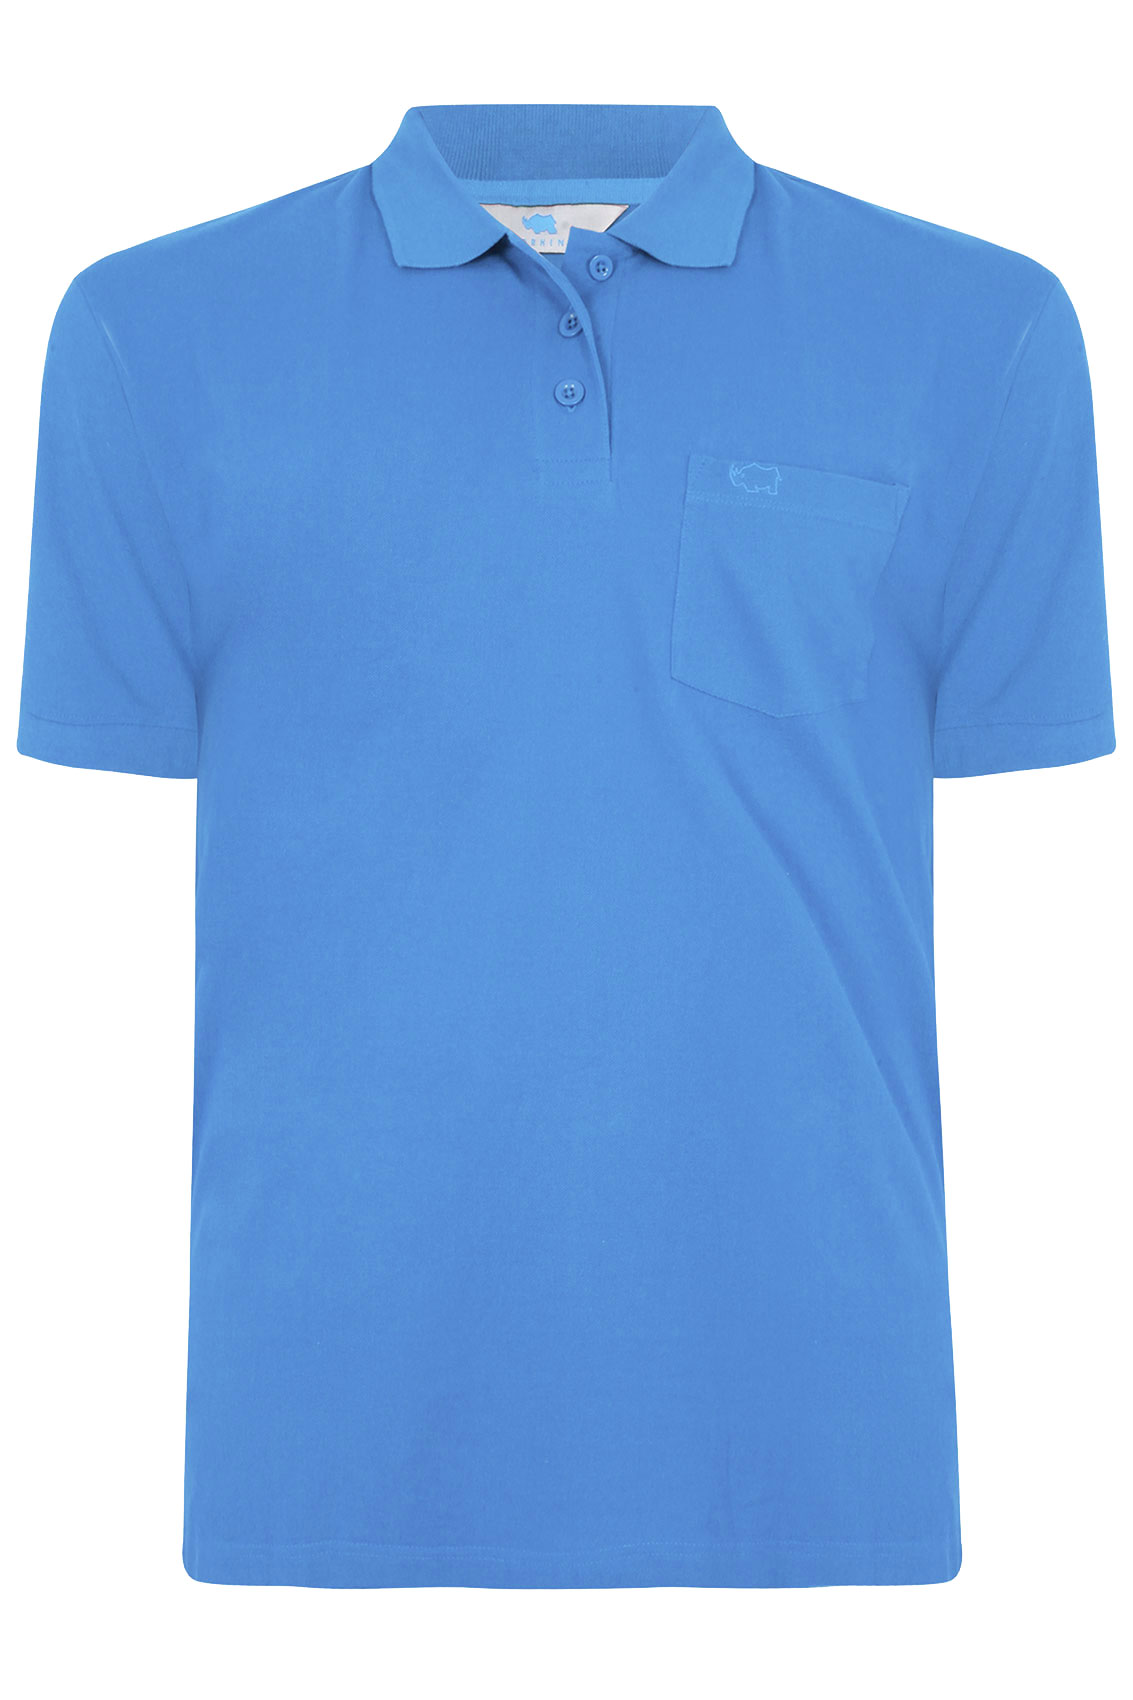 Badrhino blue plain polo shirt tall extra large sizes m for Big and tall custom polo shirts